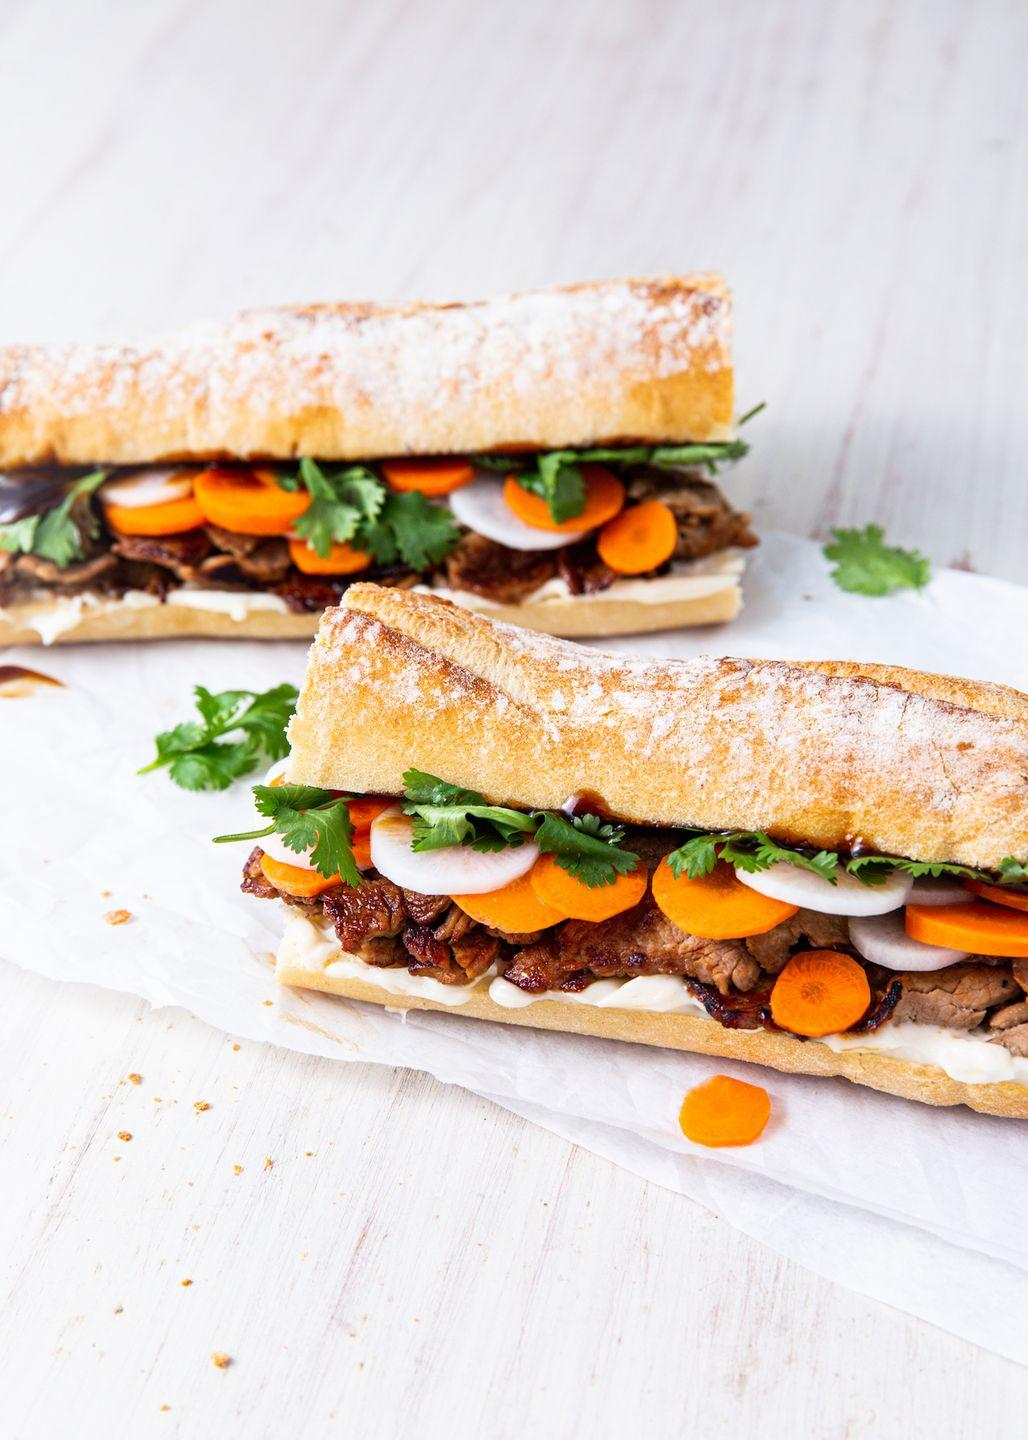 "<p>We <em>love</em> this sandwich — and we're confident that you'll love it, too.</p><p>Get the recipe from <a href=""https://www.delish.com/cooking/recipe-ideas/a30781614/banh-mi-recipe/"" rel=""nofollow noopener"" target=""_blank"" data-ylk=""slk:Delish."" class=""link rapid-noclick-resp"">Delish.</a></p>"